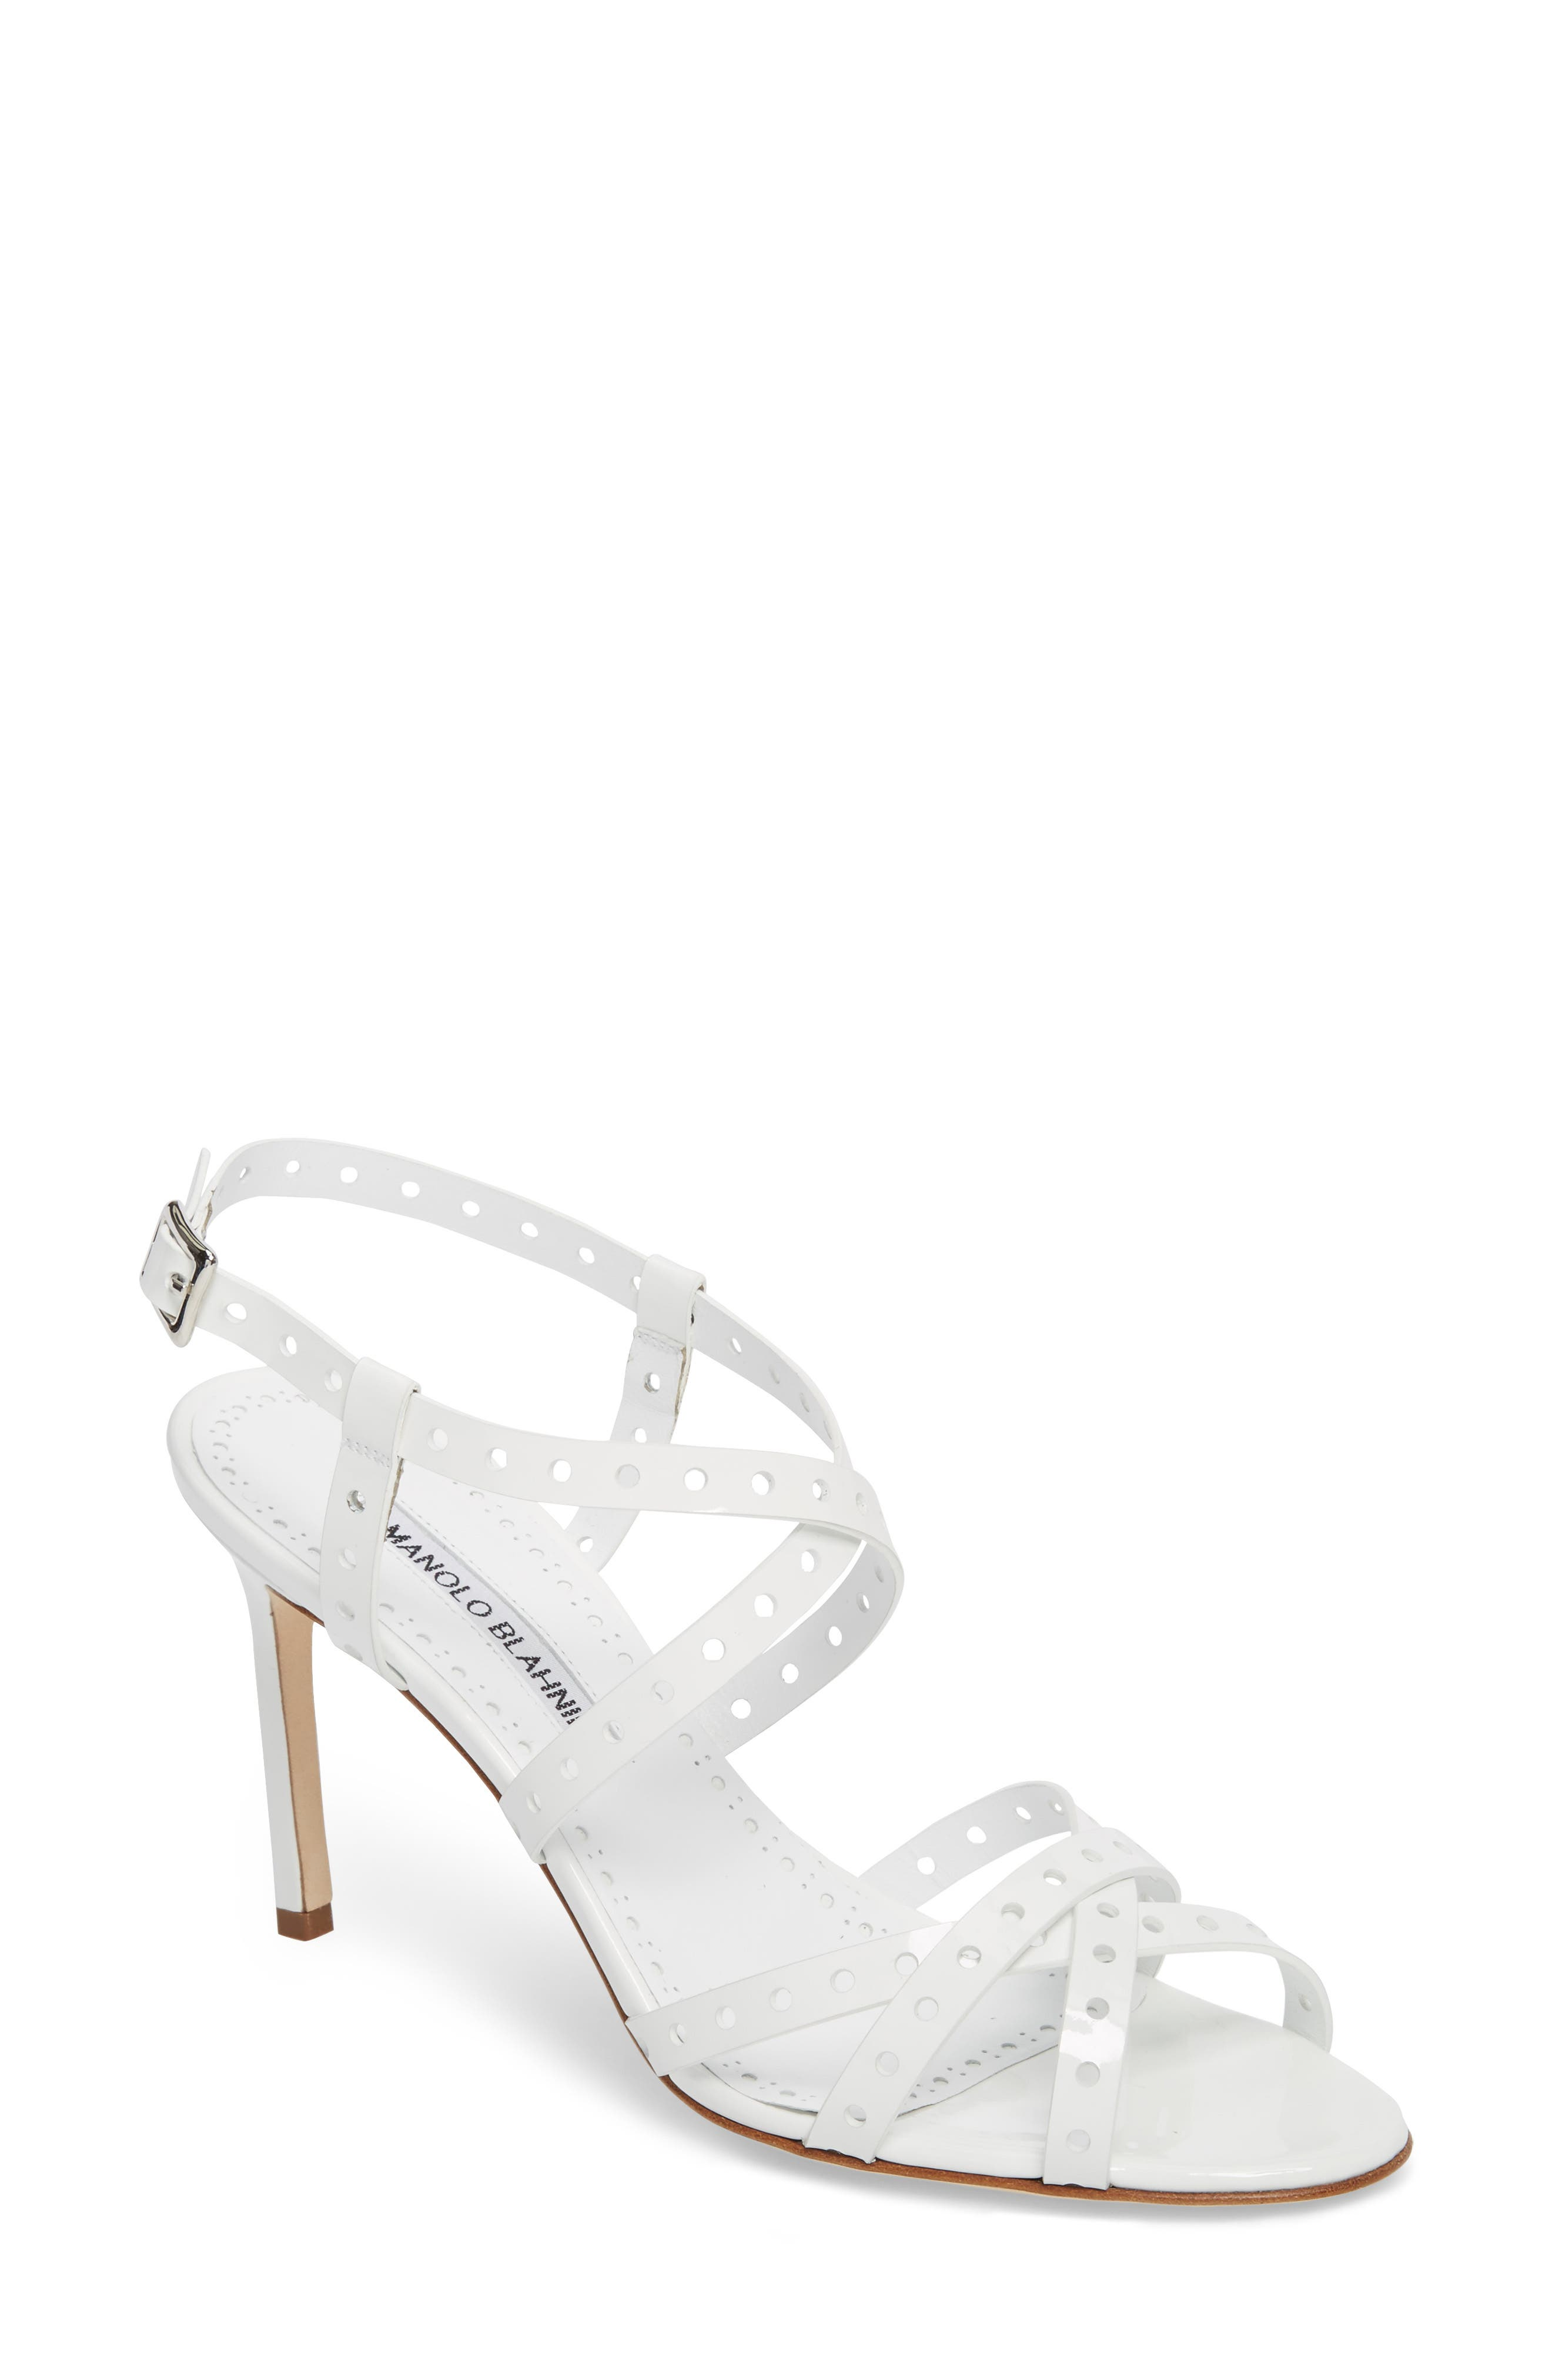 a3873264480 Manolo Blahnik Demure Perforated Strappy Sandal In White